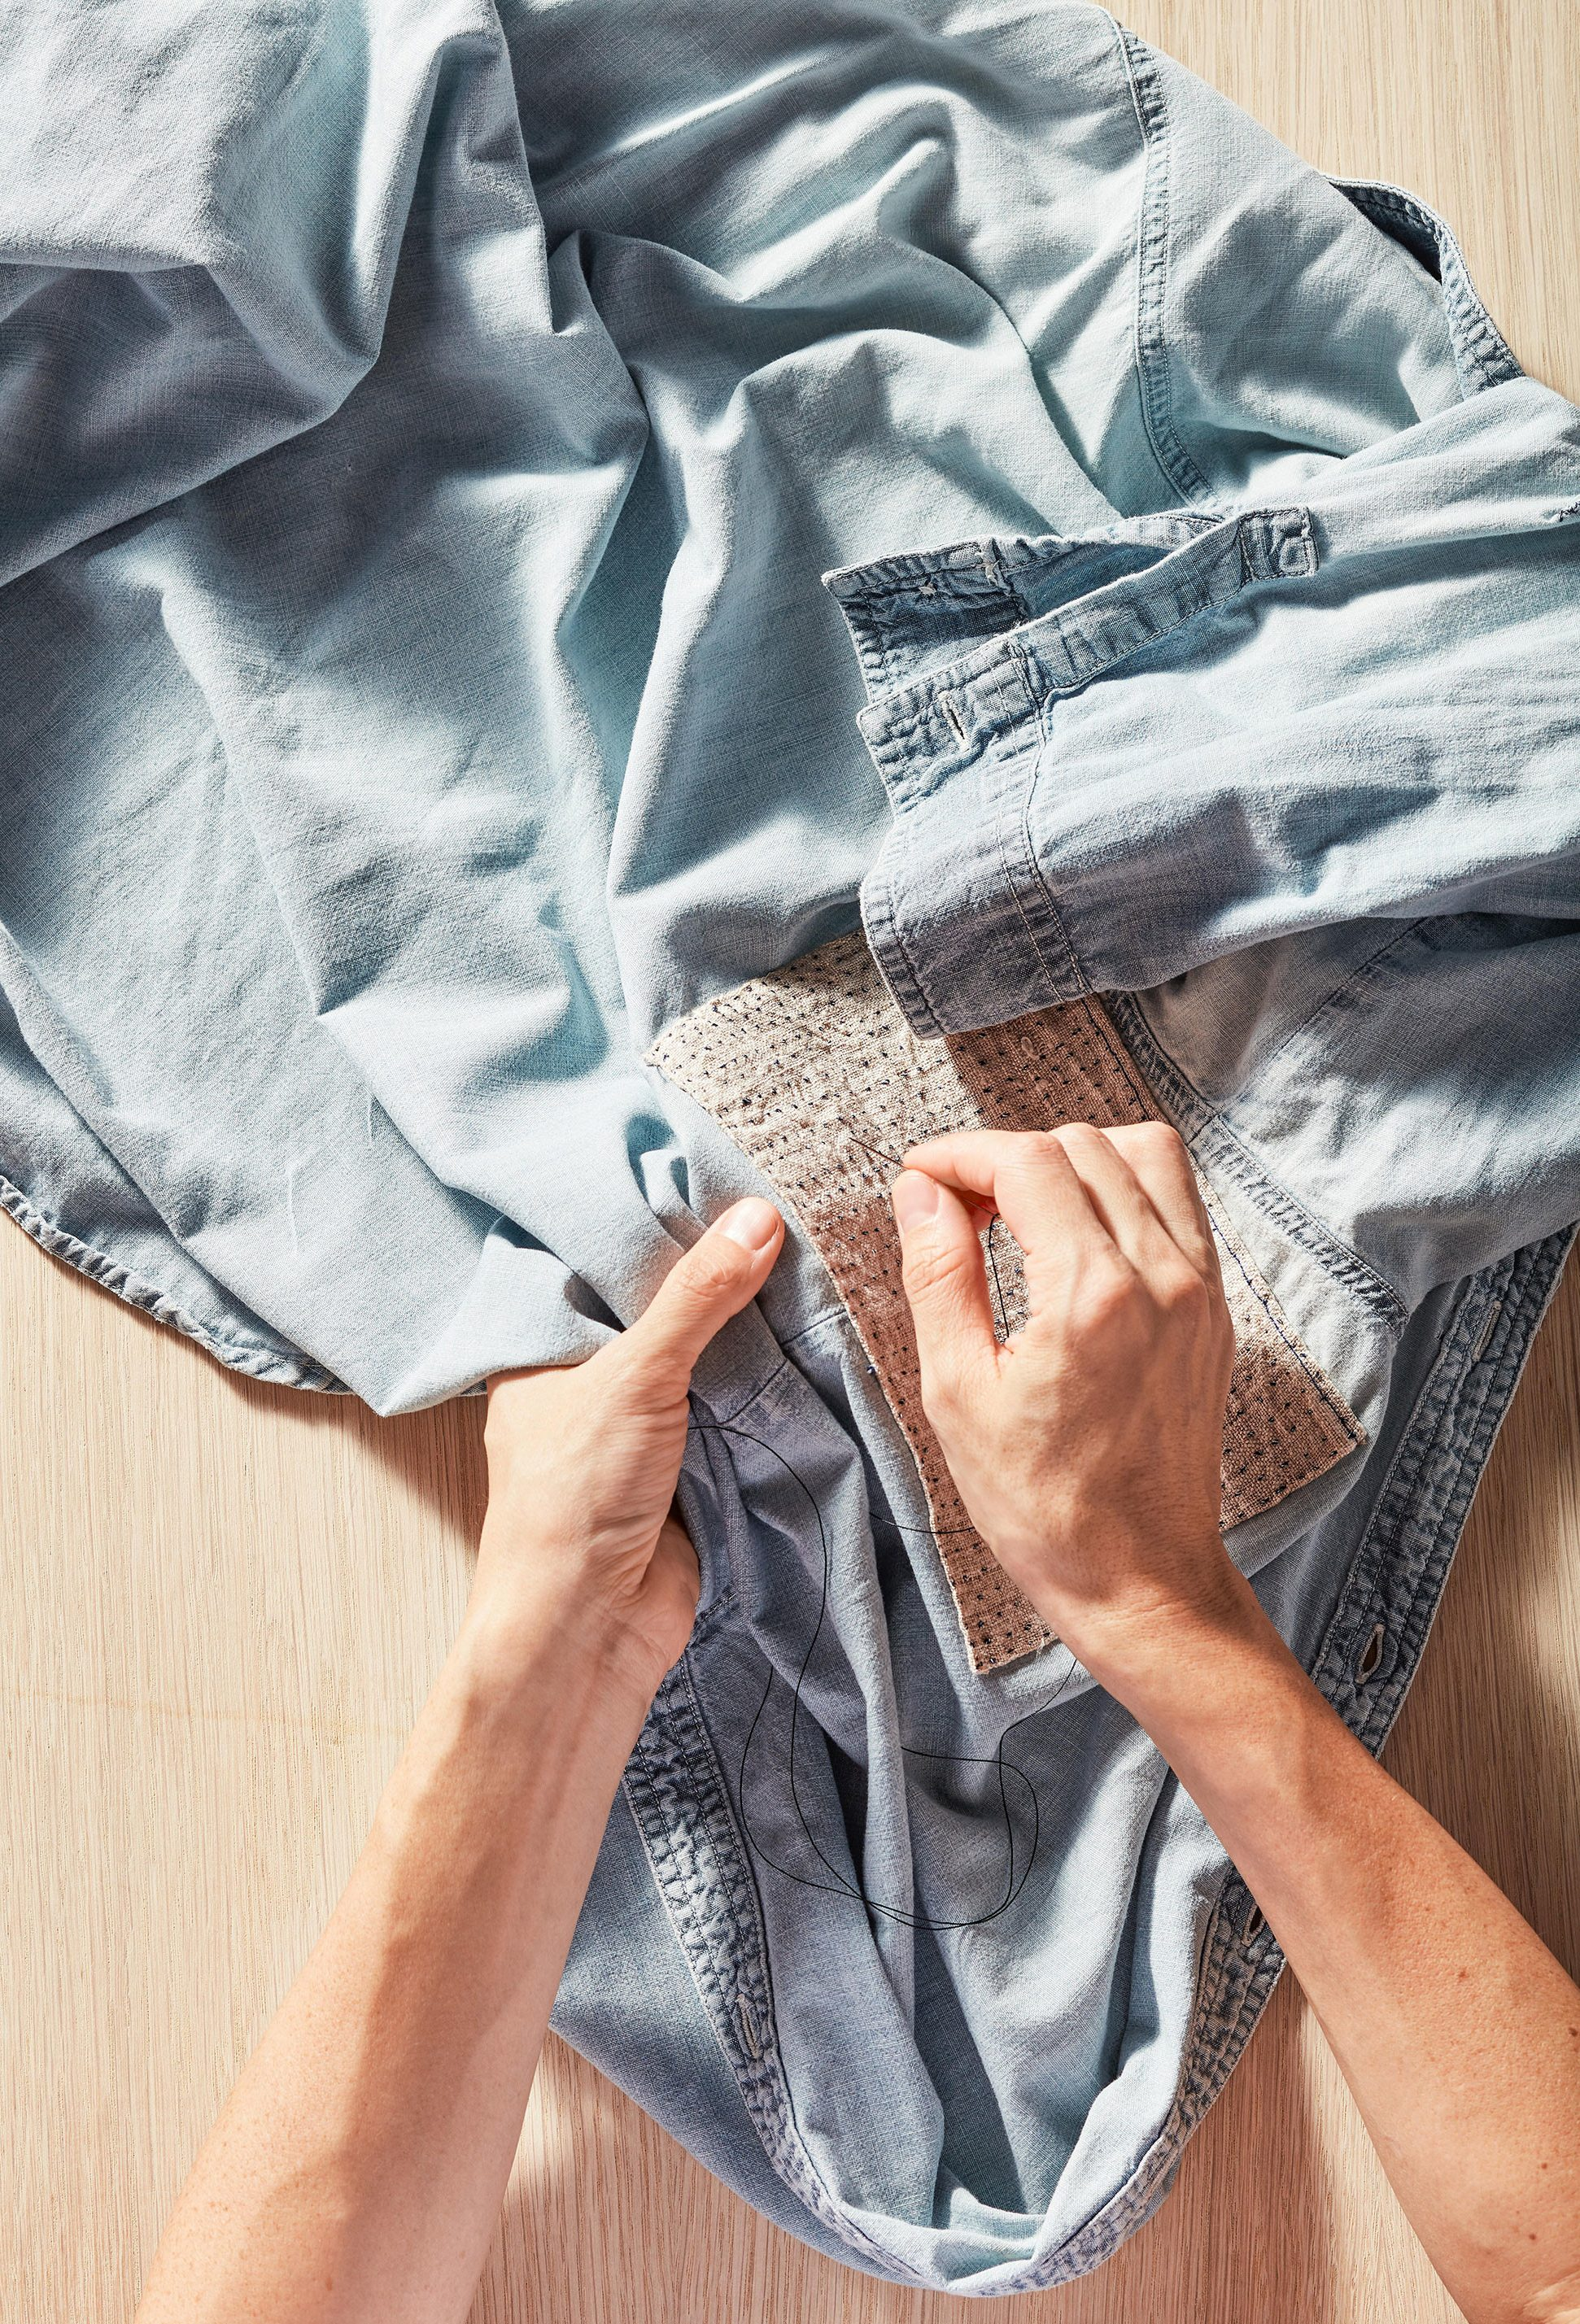 Modern Mending How To Patch A Hole Mend A Seam And Fix A Hem Martha Stewart